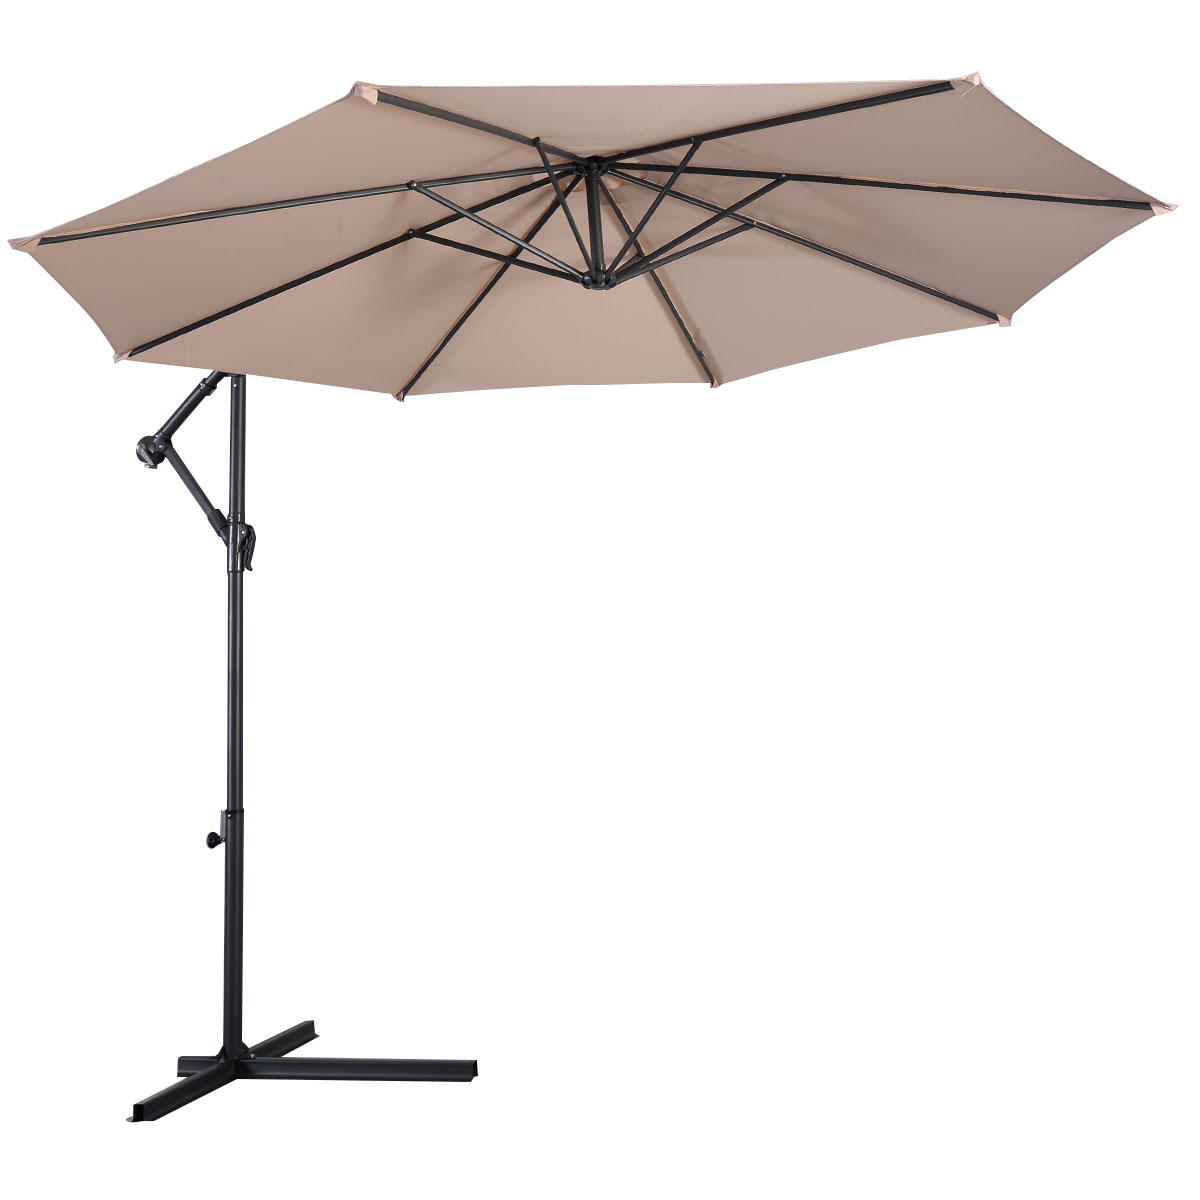 Ft offset cantilever umbrella outdoor patio umbrella w for Balcony umbrella